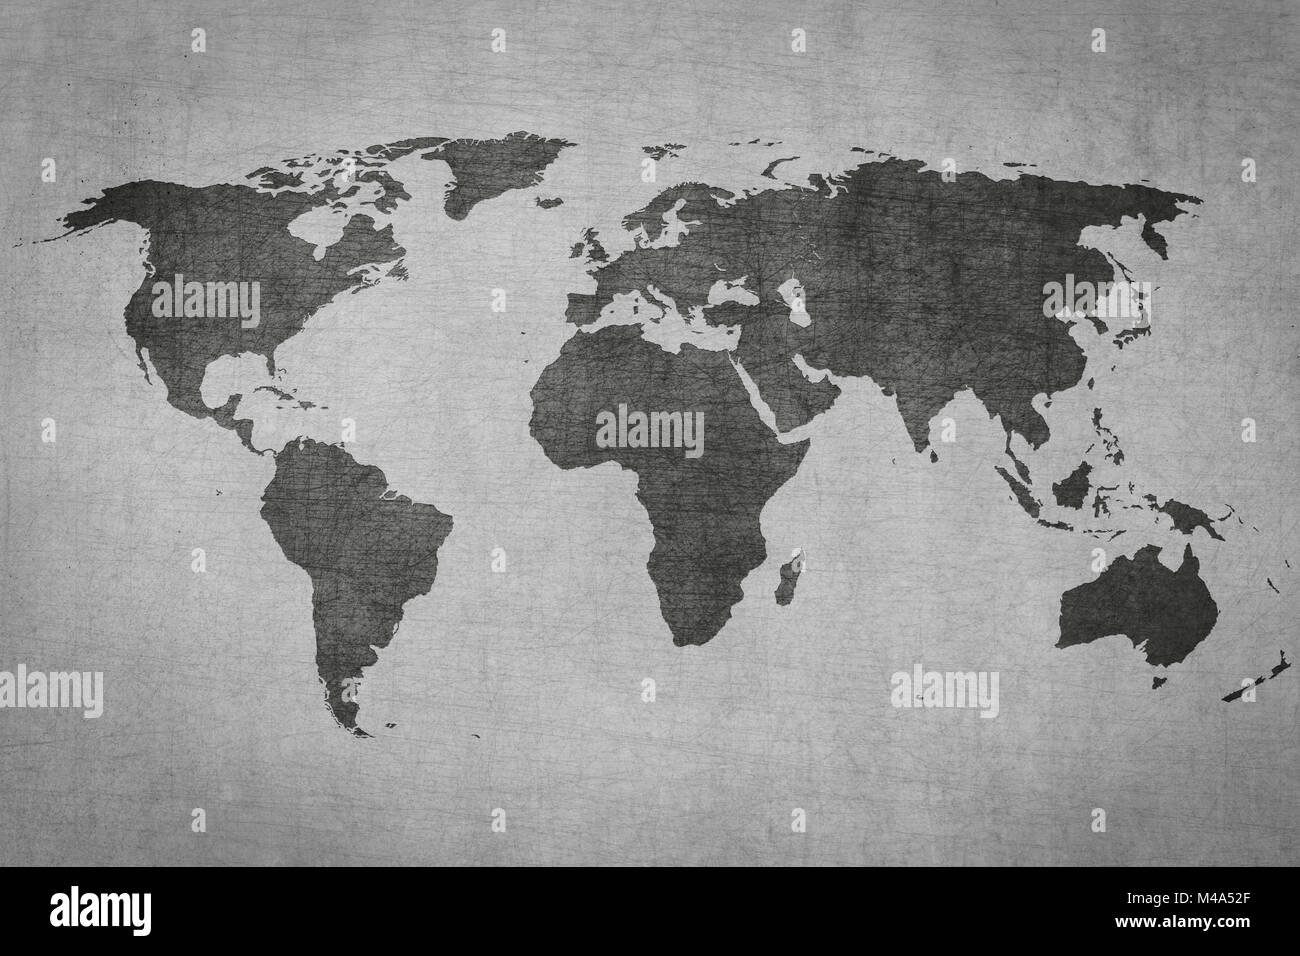 Textured vintage world map on grey background stock photo 174785815 textured vintage world map on grey background gumiabroncs Gallery